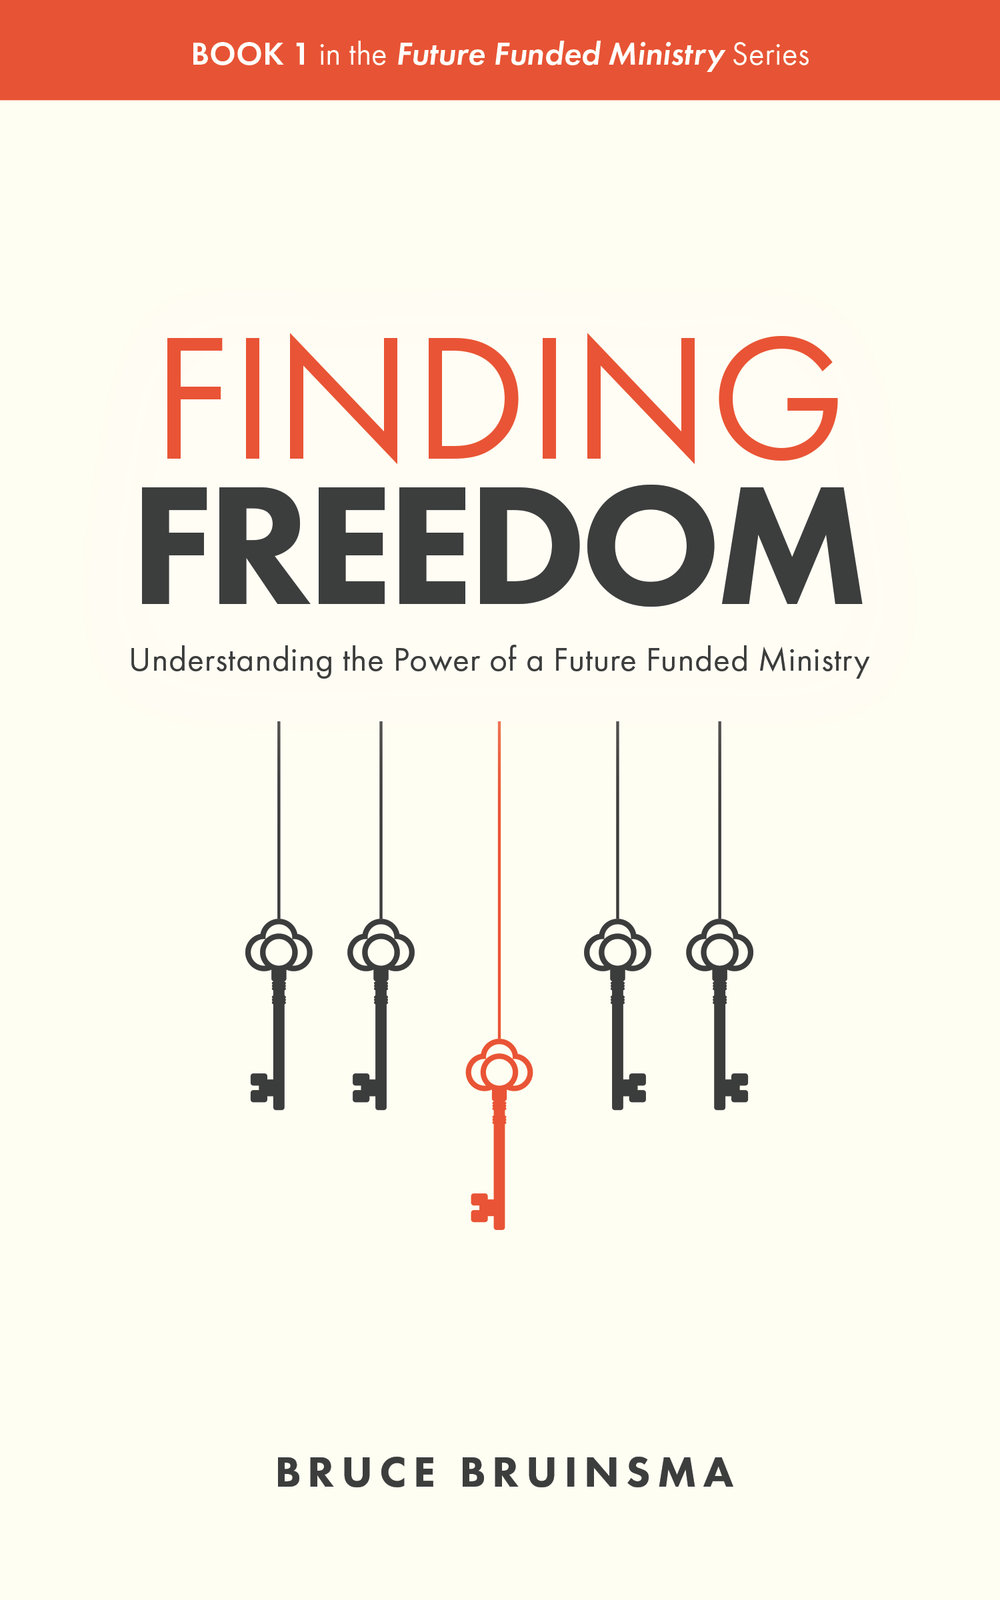 2018-bruce-bruinsma-finding-freedom-kindle-cover.jpg